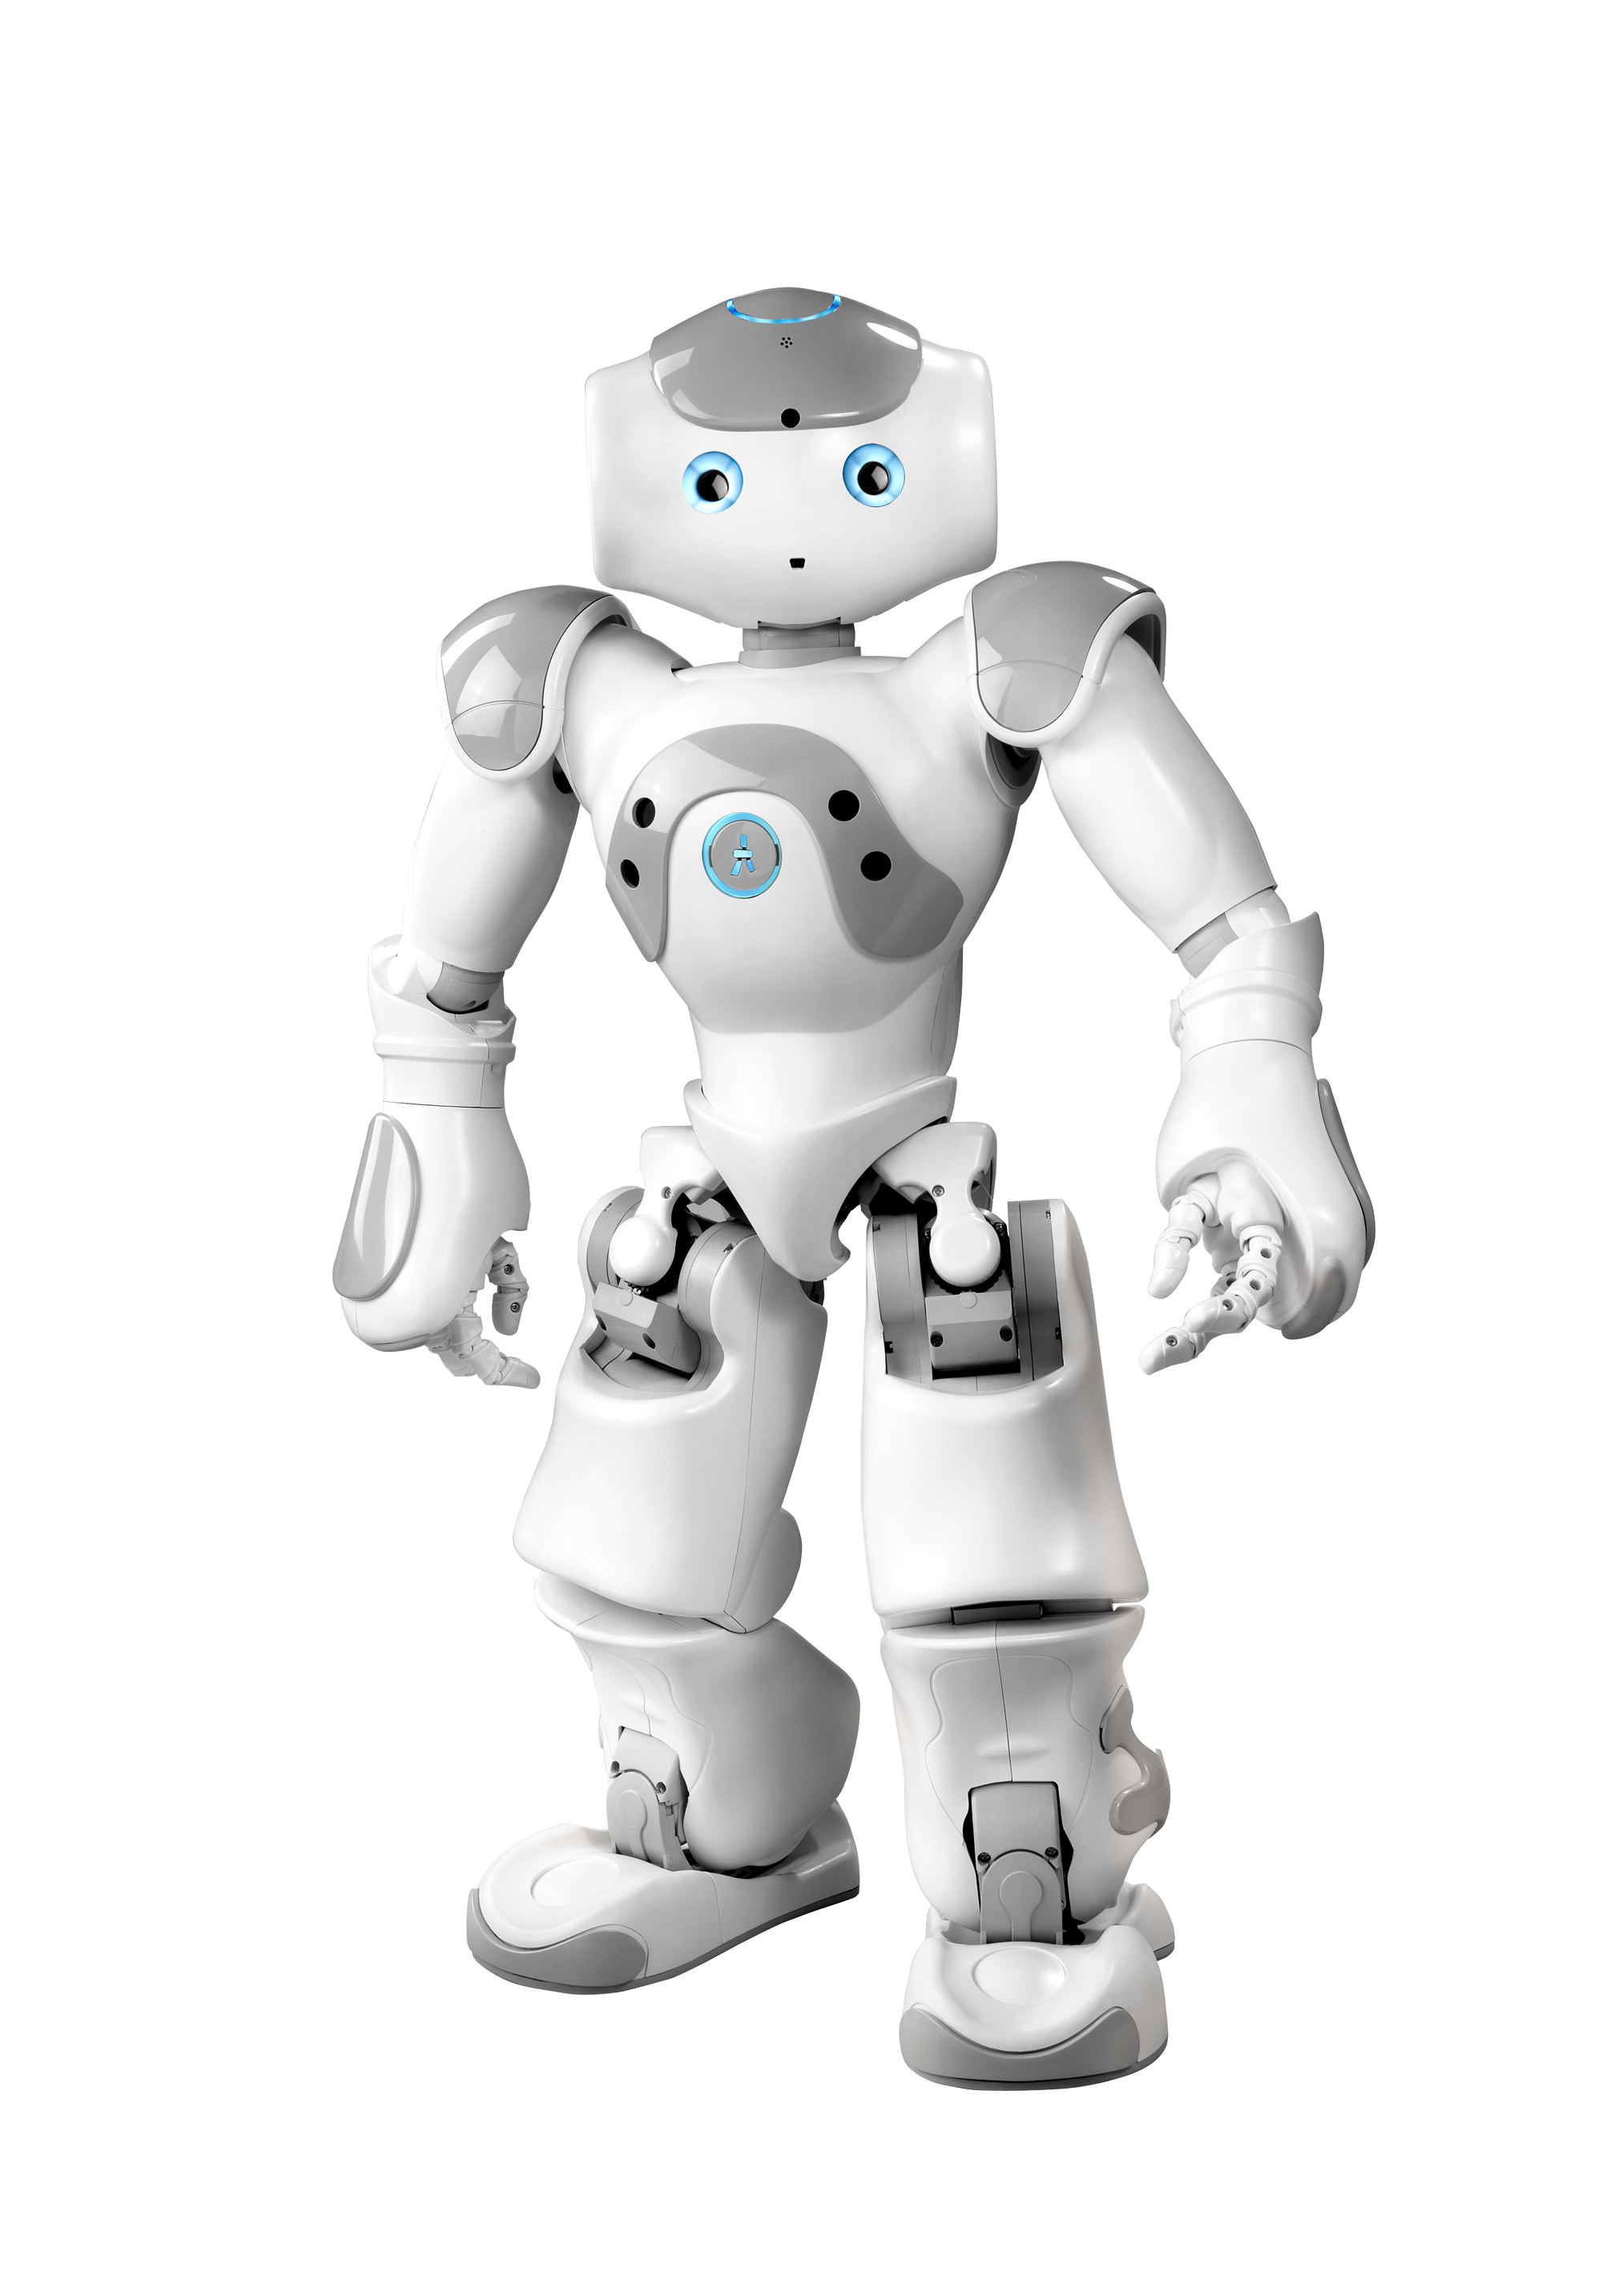 Robot Png 26708 Png Images Pngio